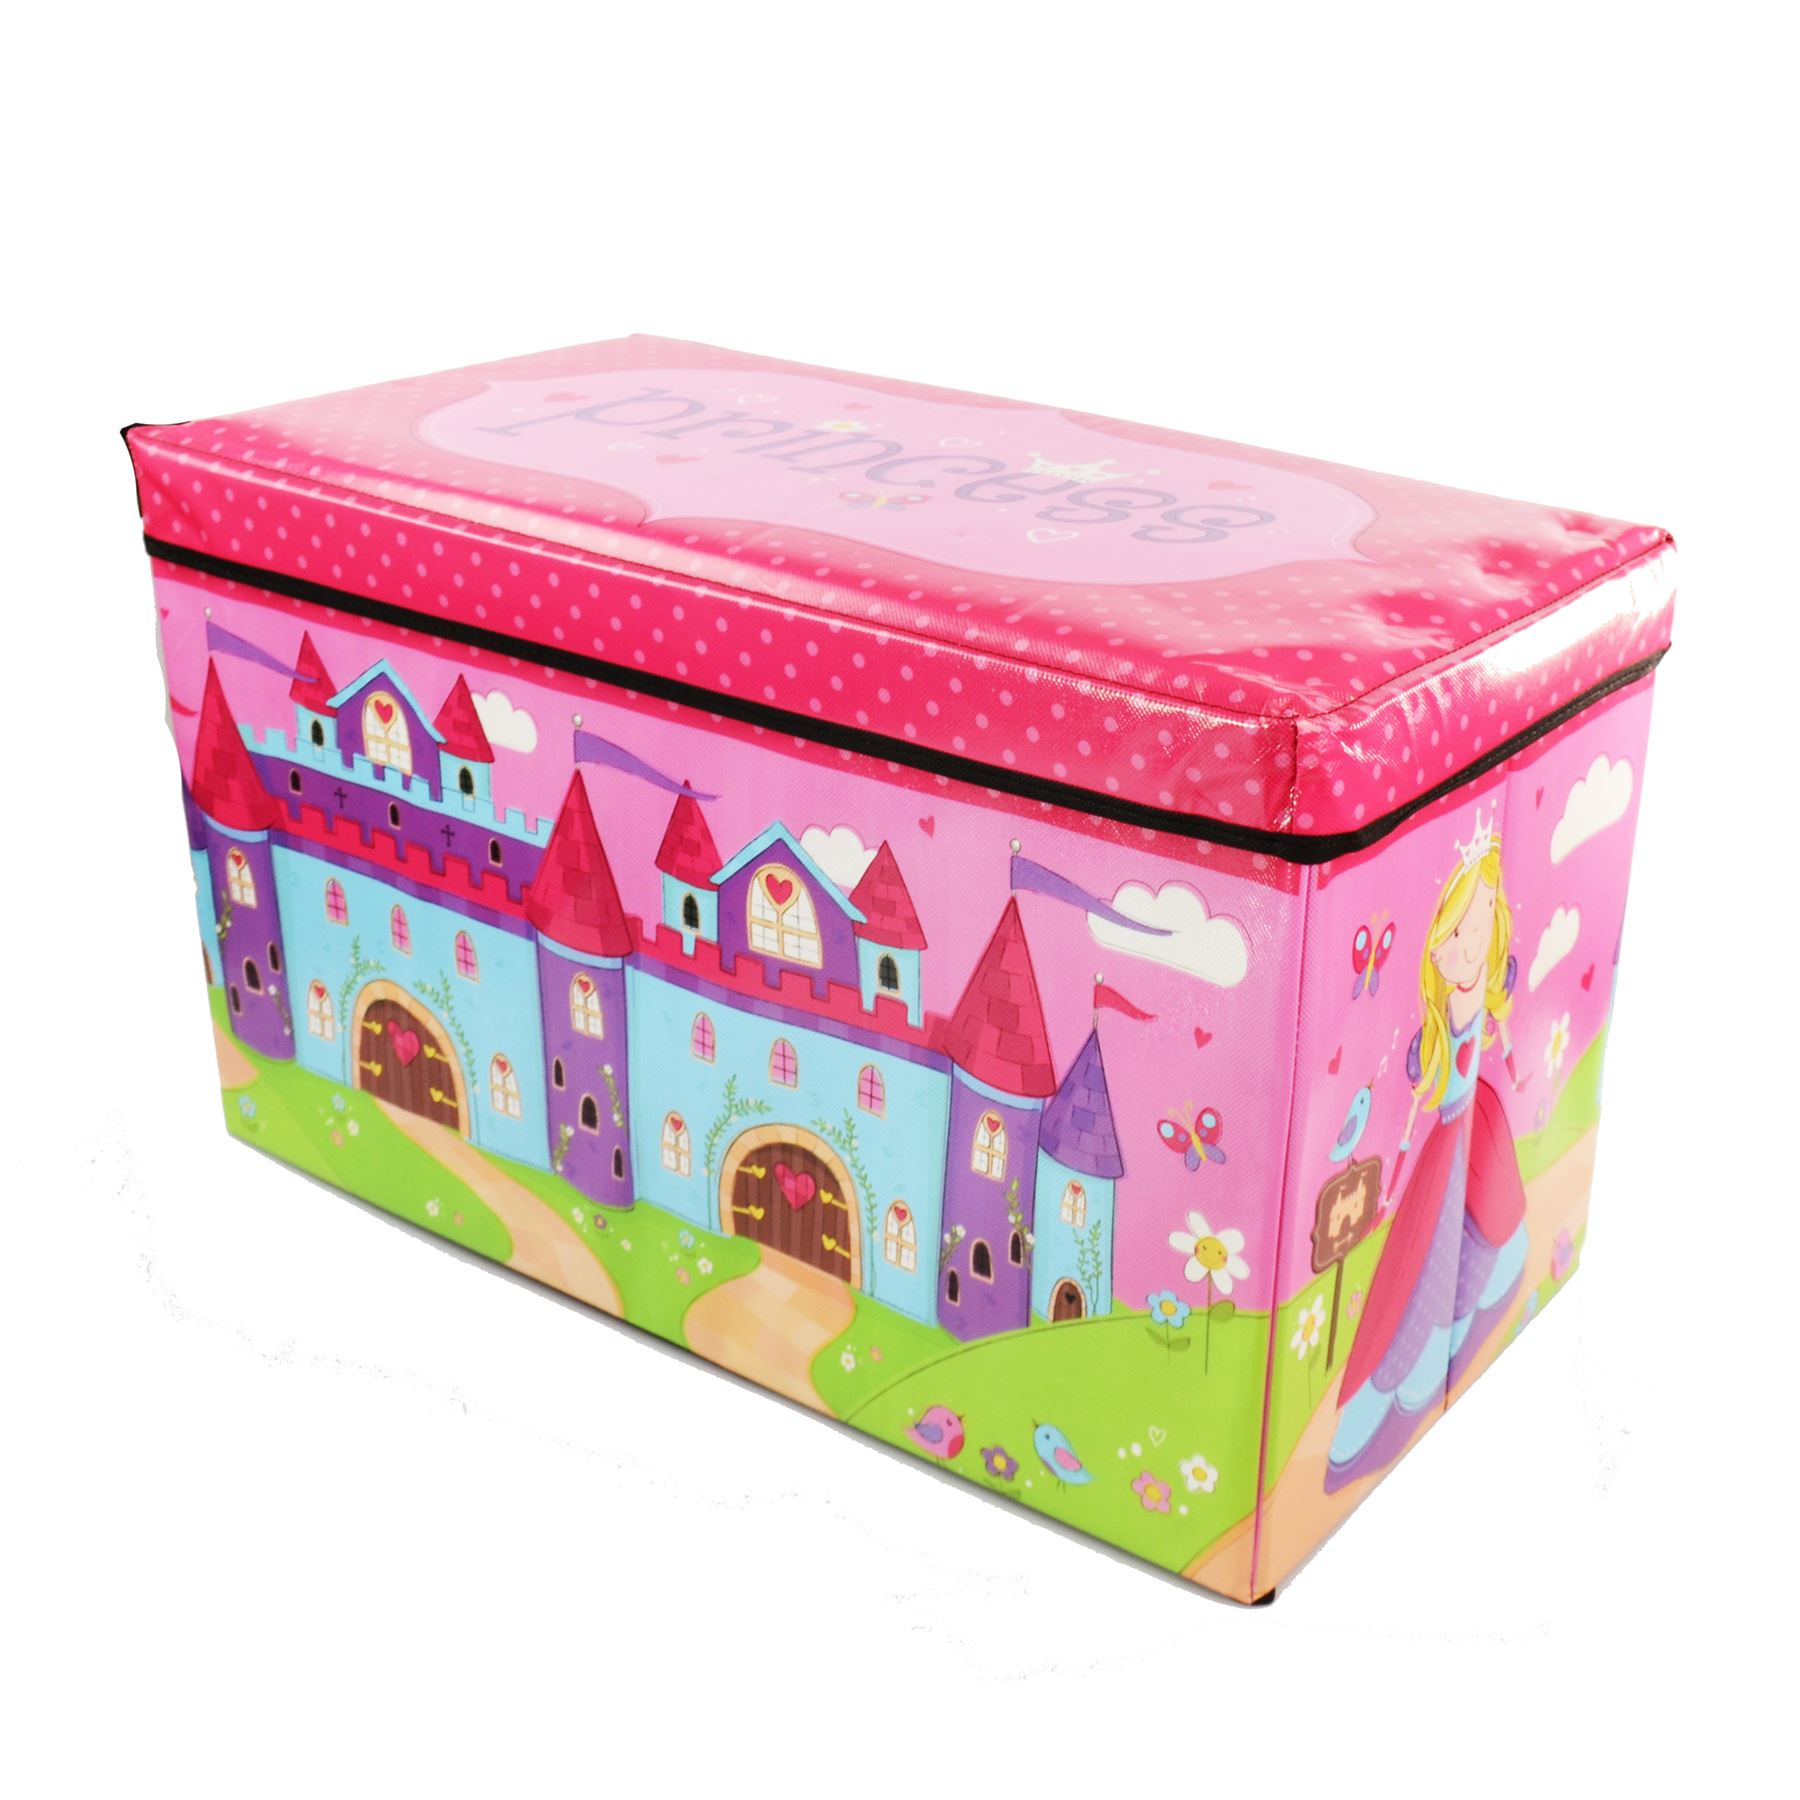 Boys Girls Kids Large Folding Storage Toy Box